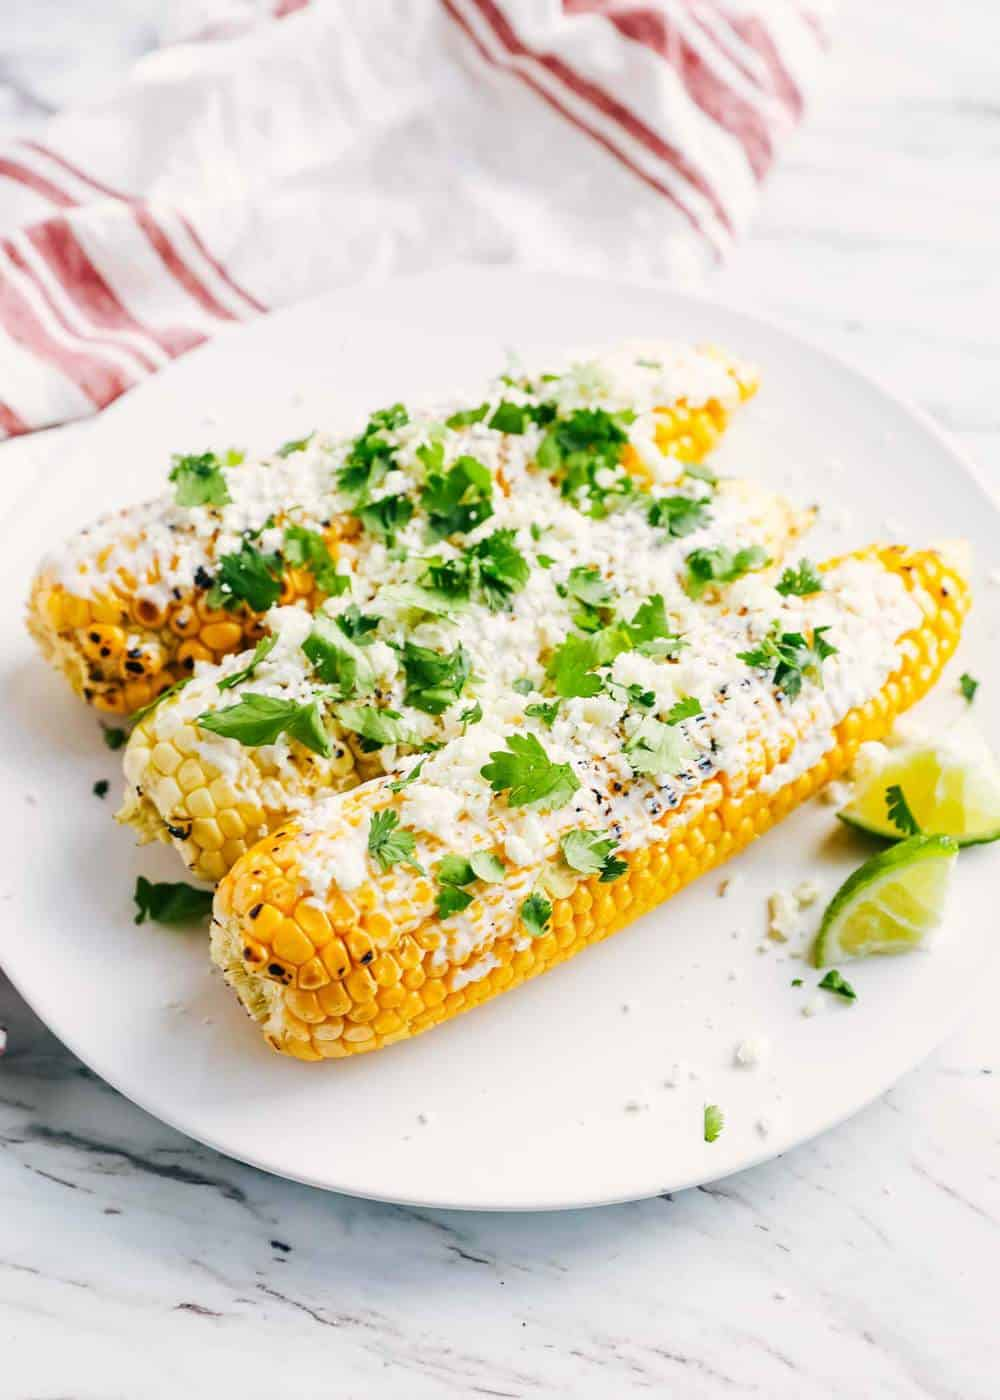 Mexican corn with cilantro on white plate